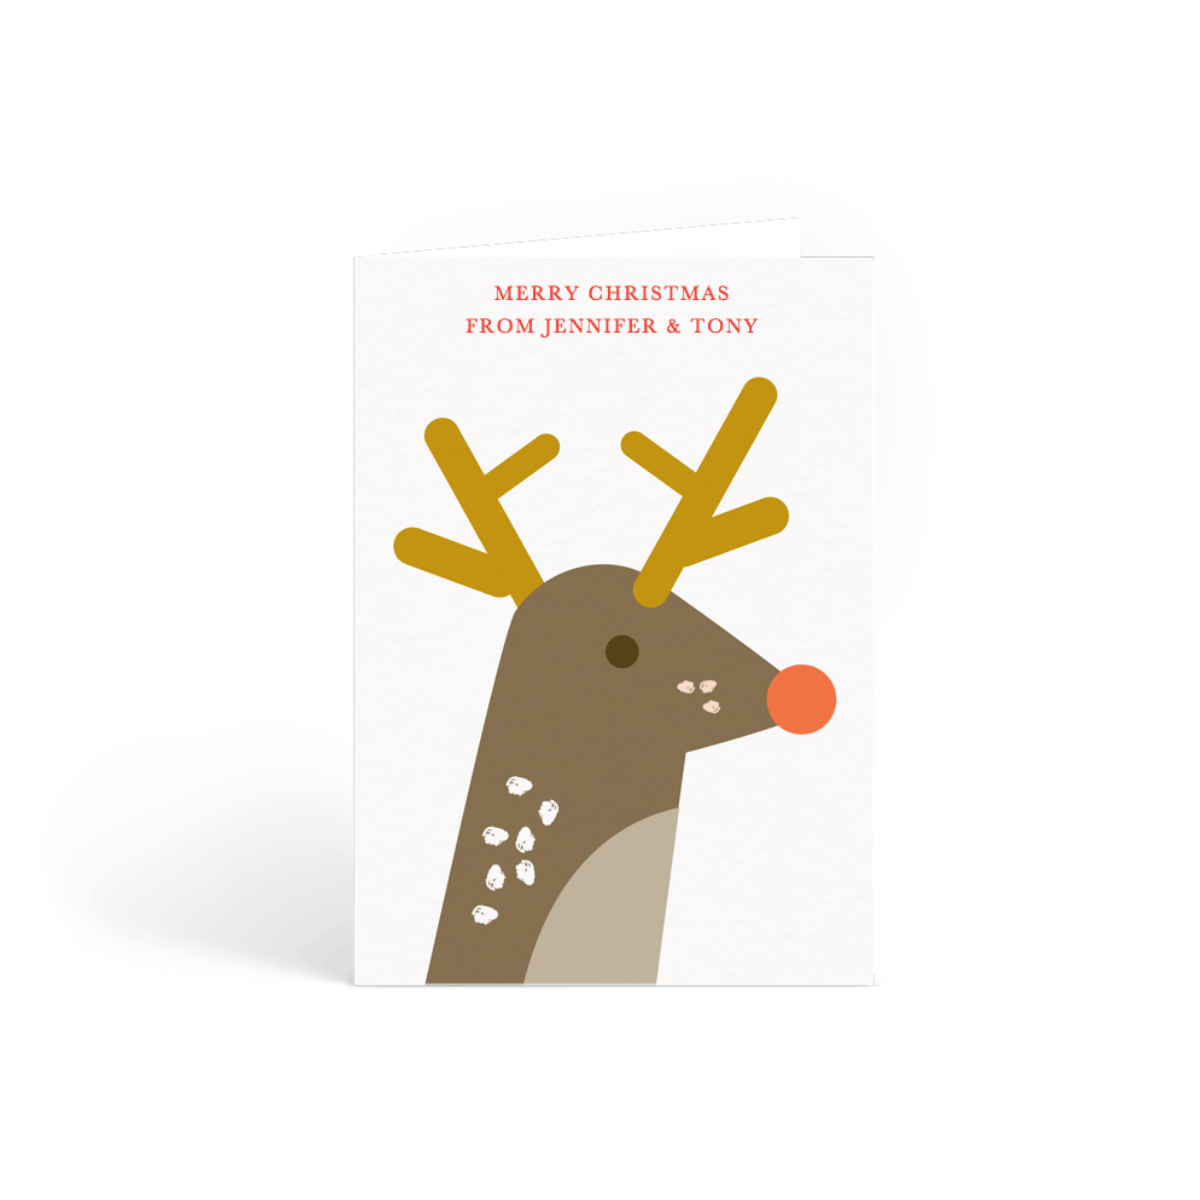 Https%3a%2f%2fwww.papier.com%2fproduct image%2f31247%2f2%2fchristmas reindeer 7848 front 1541413322.png?ixlib=rb 1.1